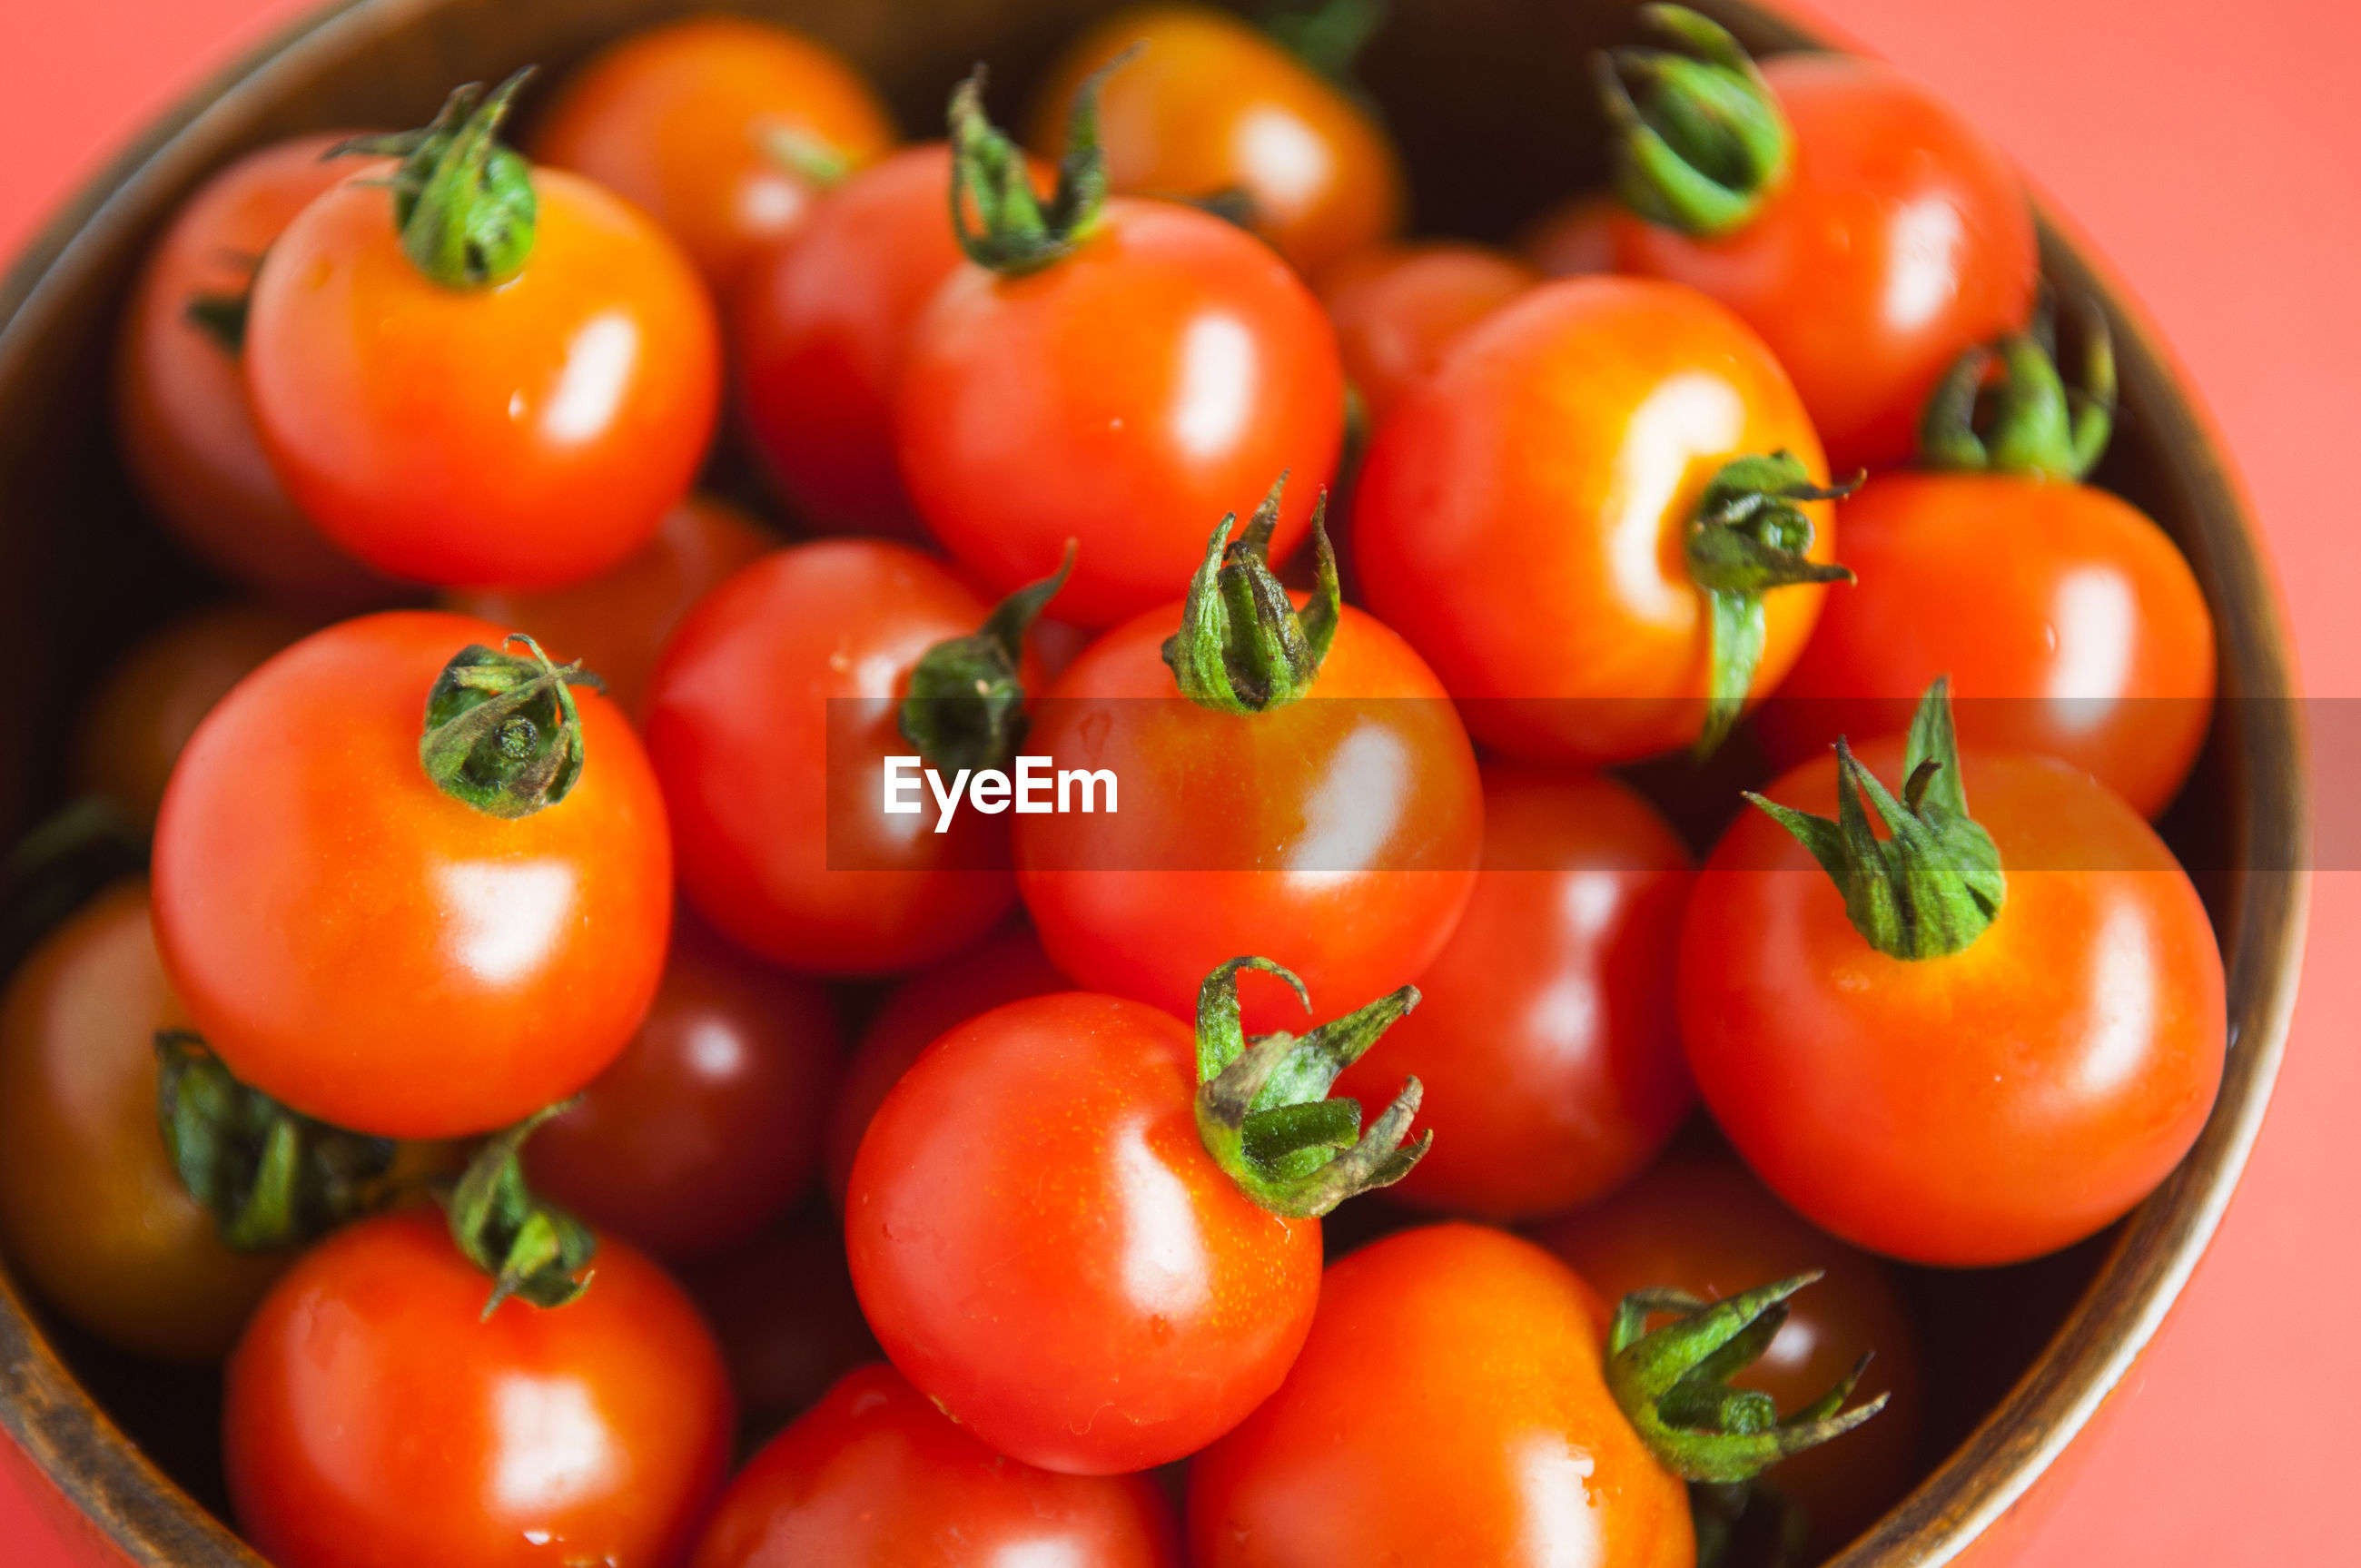 Close-up of tomatoes in bowl against red background